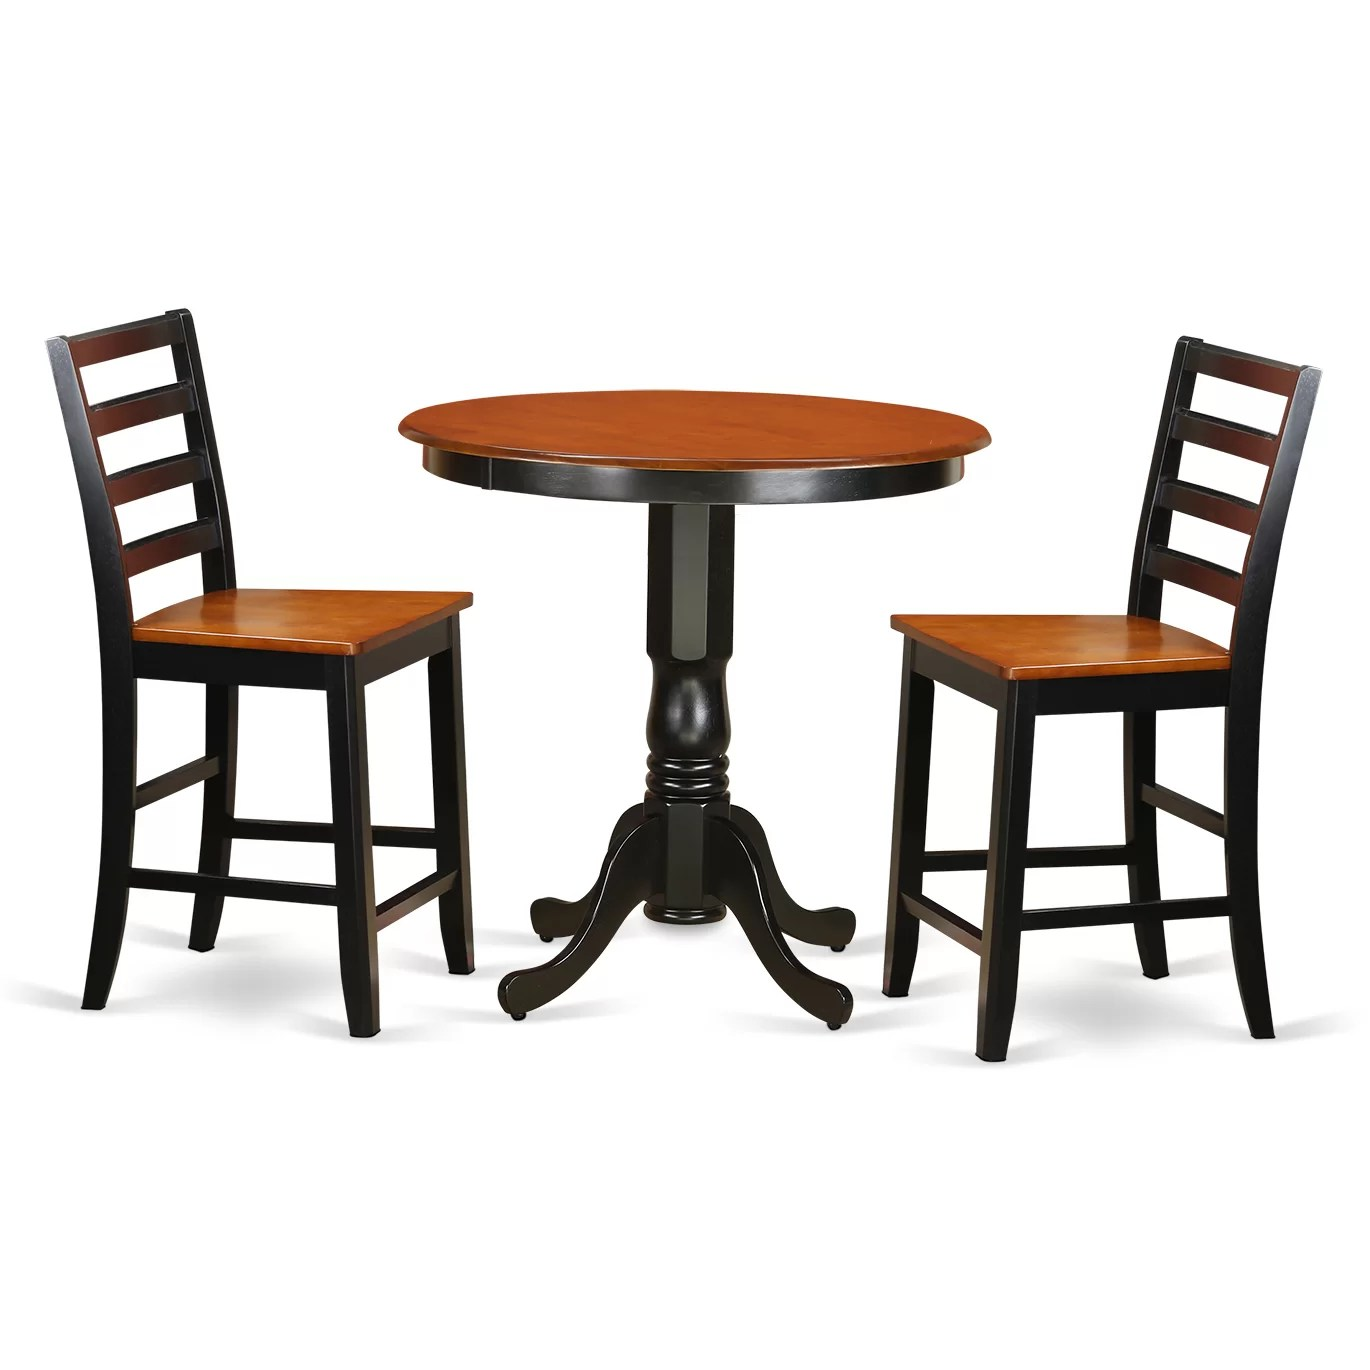 Bar Height Dining Chairs Wooden Importers Jackson 3 Piece Counter Height Pub Table